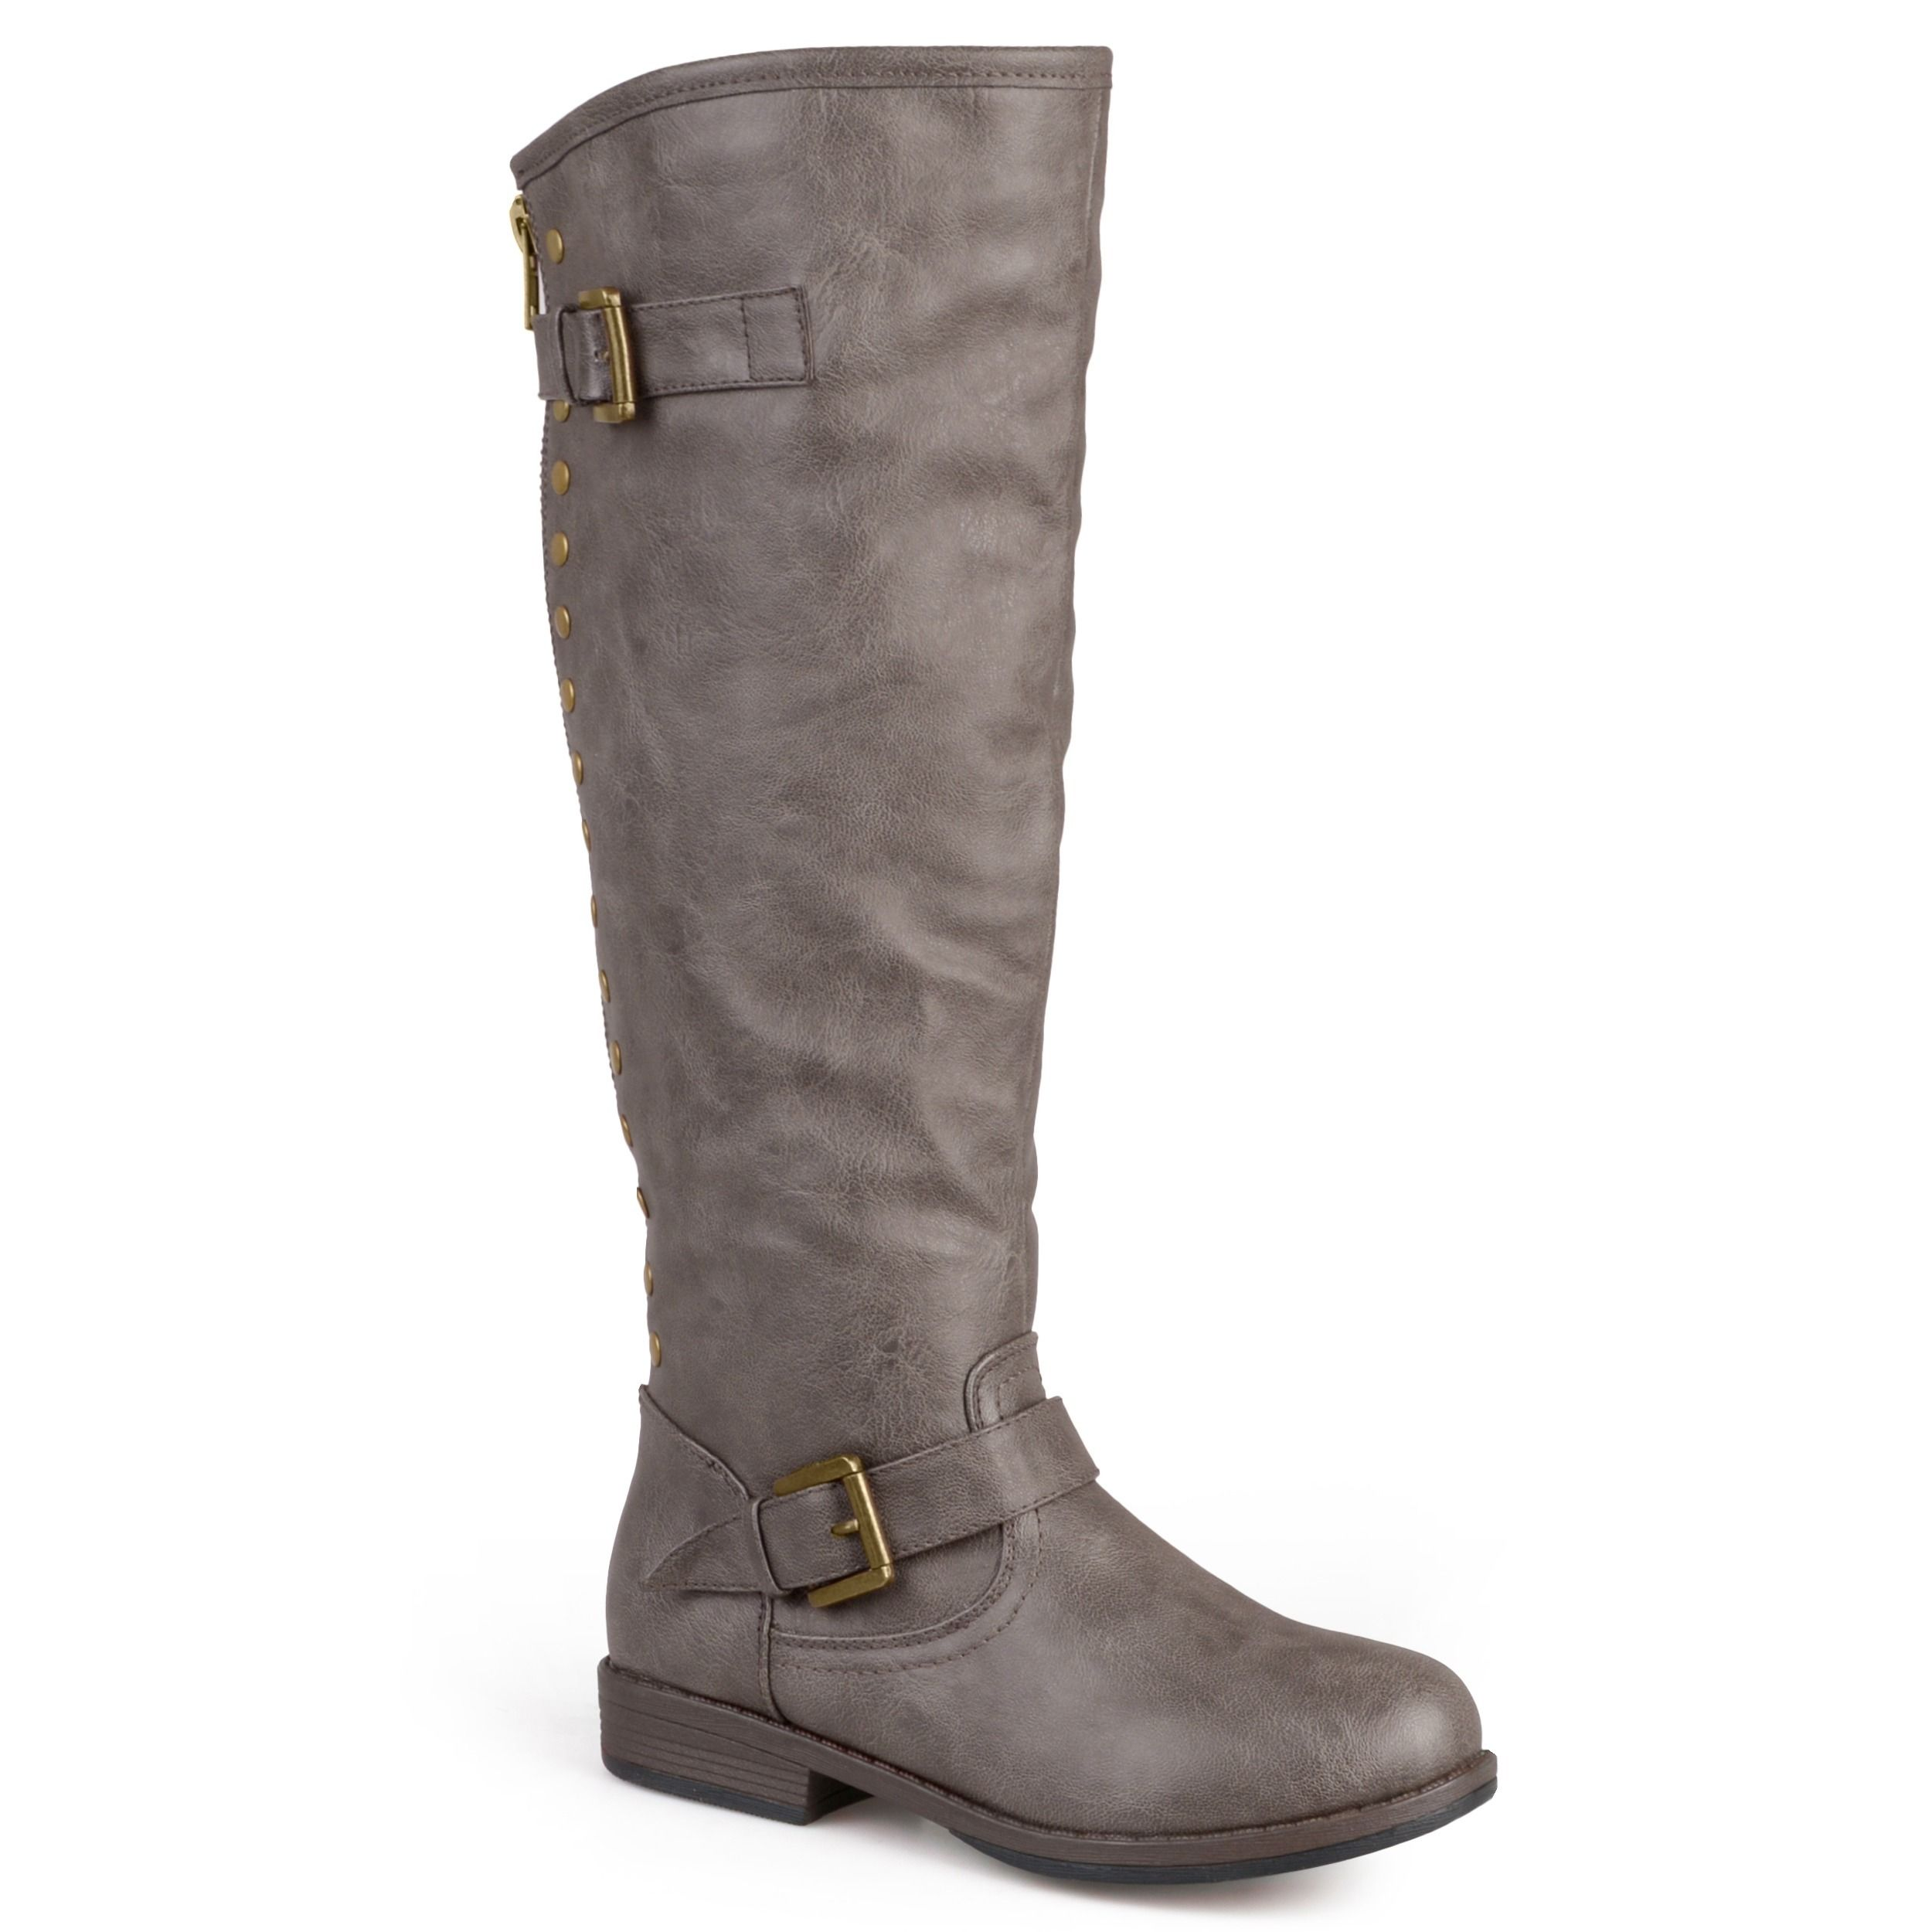 2017 Europe 2017 Fresh Bare Traps Seville Riding Boot Dk Grey